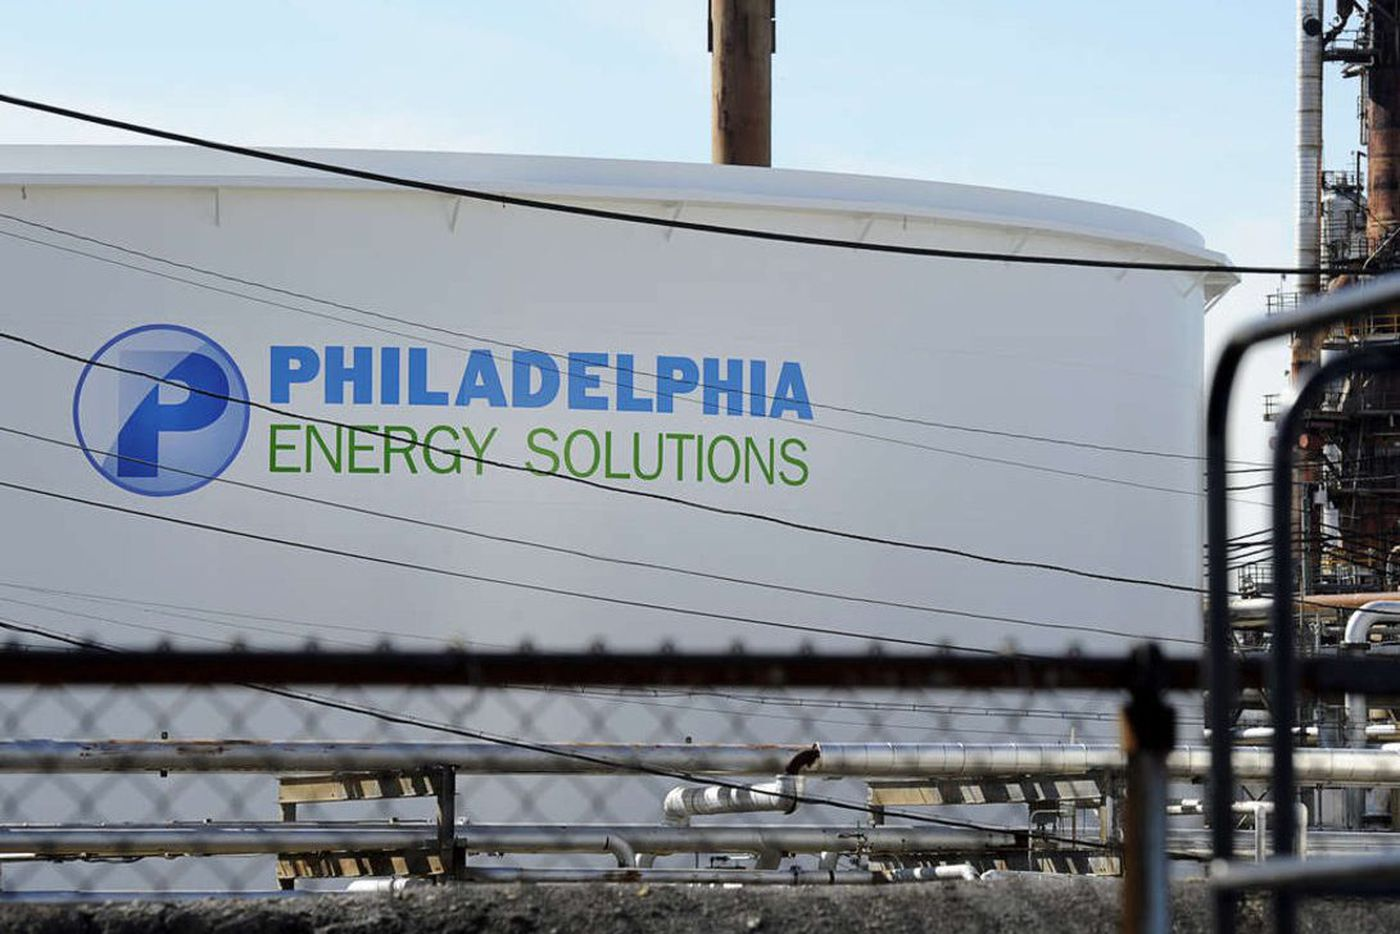 Pipeline operator will move to cut Philly refiners' access to Pittsburgh